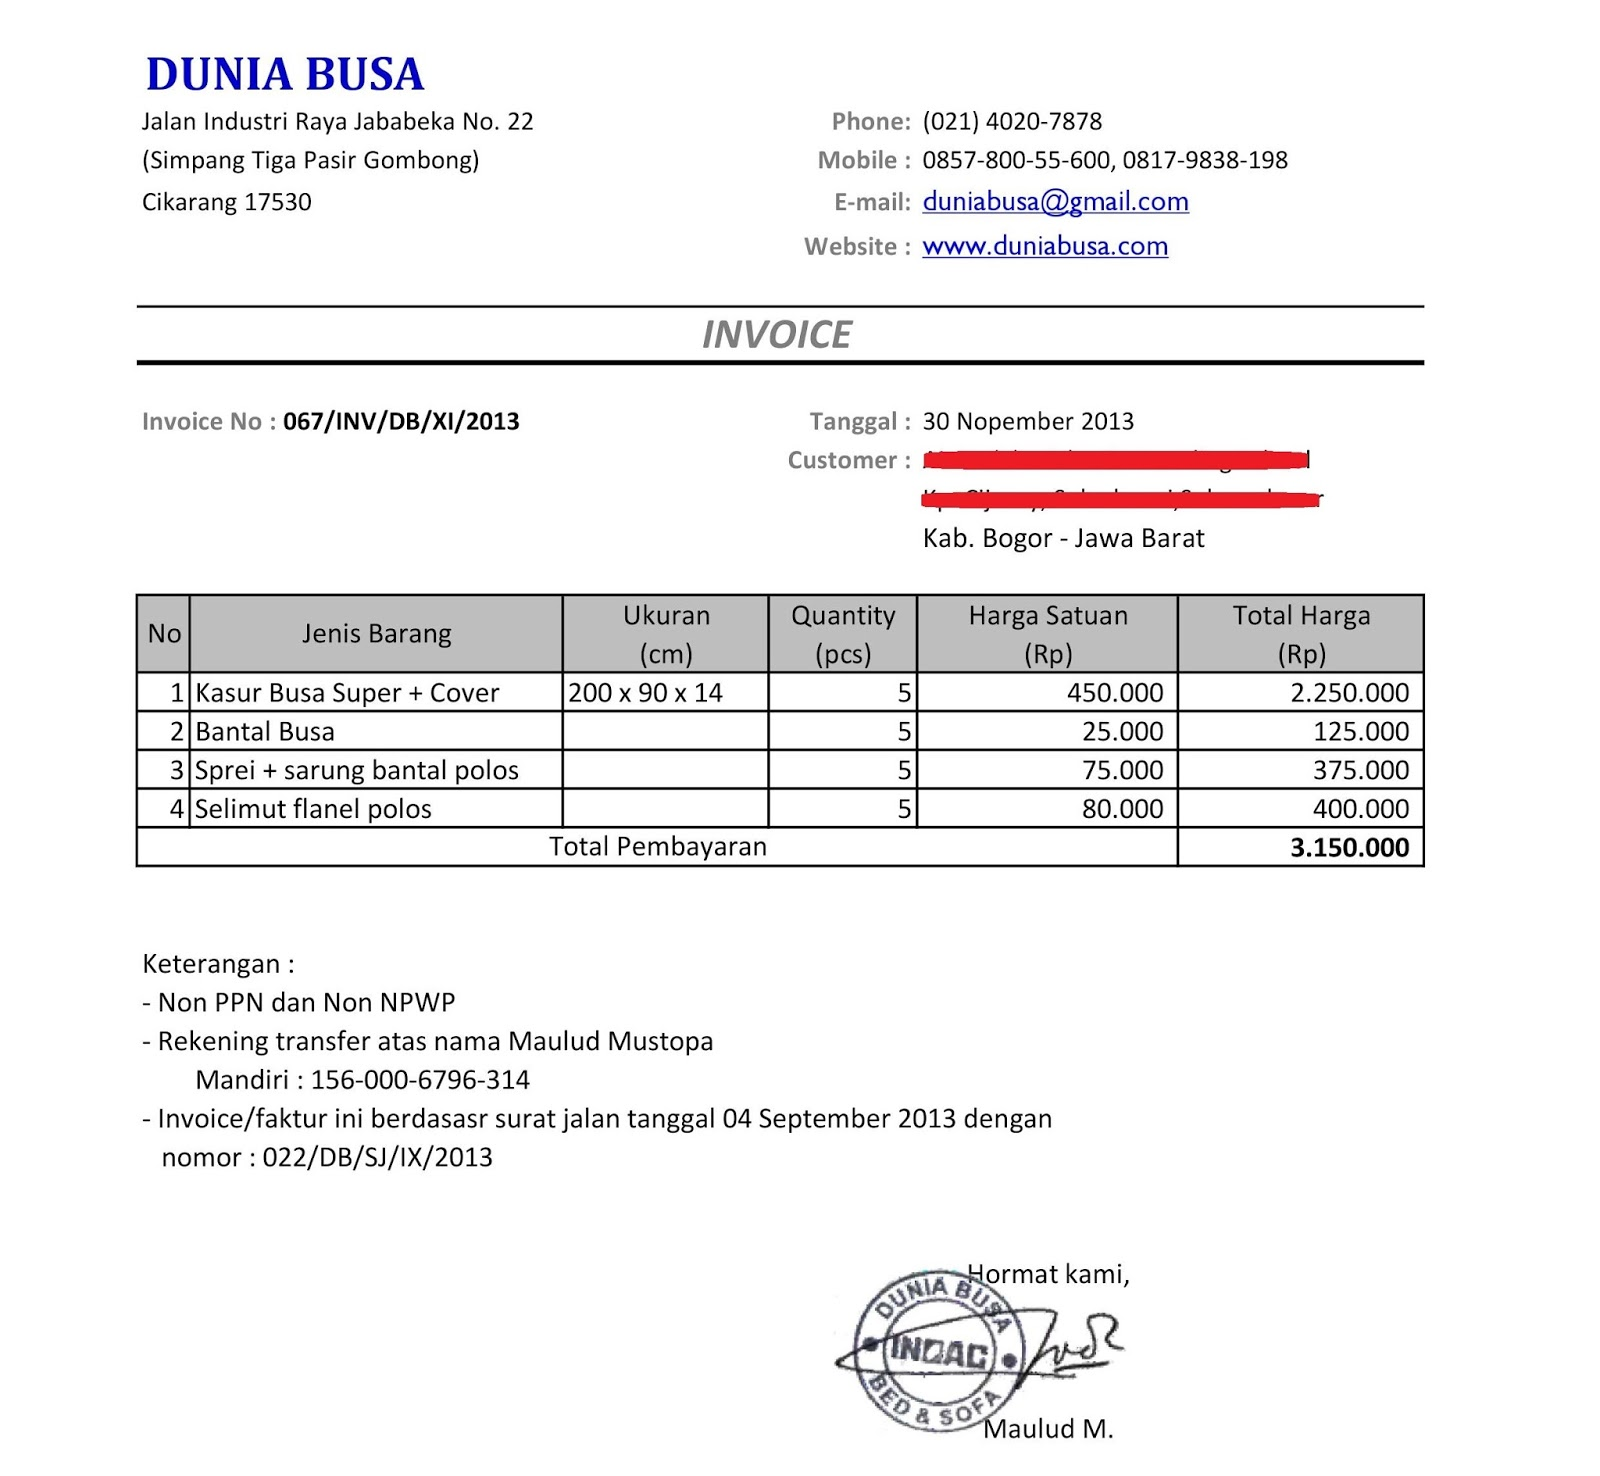 Usdgus  Scenic Free Invoice Online  Create Invoice Online  Invoice Template  With Outstanding Contoh Format Invoice Atau Surat Tagihan  Brankas Arsip  Free Invoice Online With Archaic How Make Invoice Also How To Determine Invoice Price On A New Car In Addition Free Online Printable Invoices And Software For Billing And Invoicing Free As Well As Invoice Ato Additionally Custom Invoice Software From Sklepco With Usdgus  Outstanding Free Invoice Online  Create Invoice Online  Invoice Template  With Archaic Contoh Format Invoice Atau Surat Tagihan  Brankas Arsip  Free Invoice Online And Scenic How Make Invoice Also How To Determine Invoice Price On A New Car In Addition Free Online Printable Invoices From Sklepco